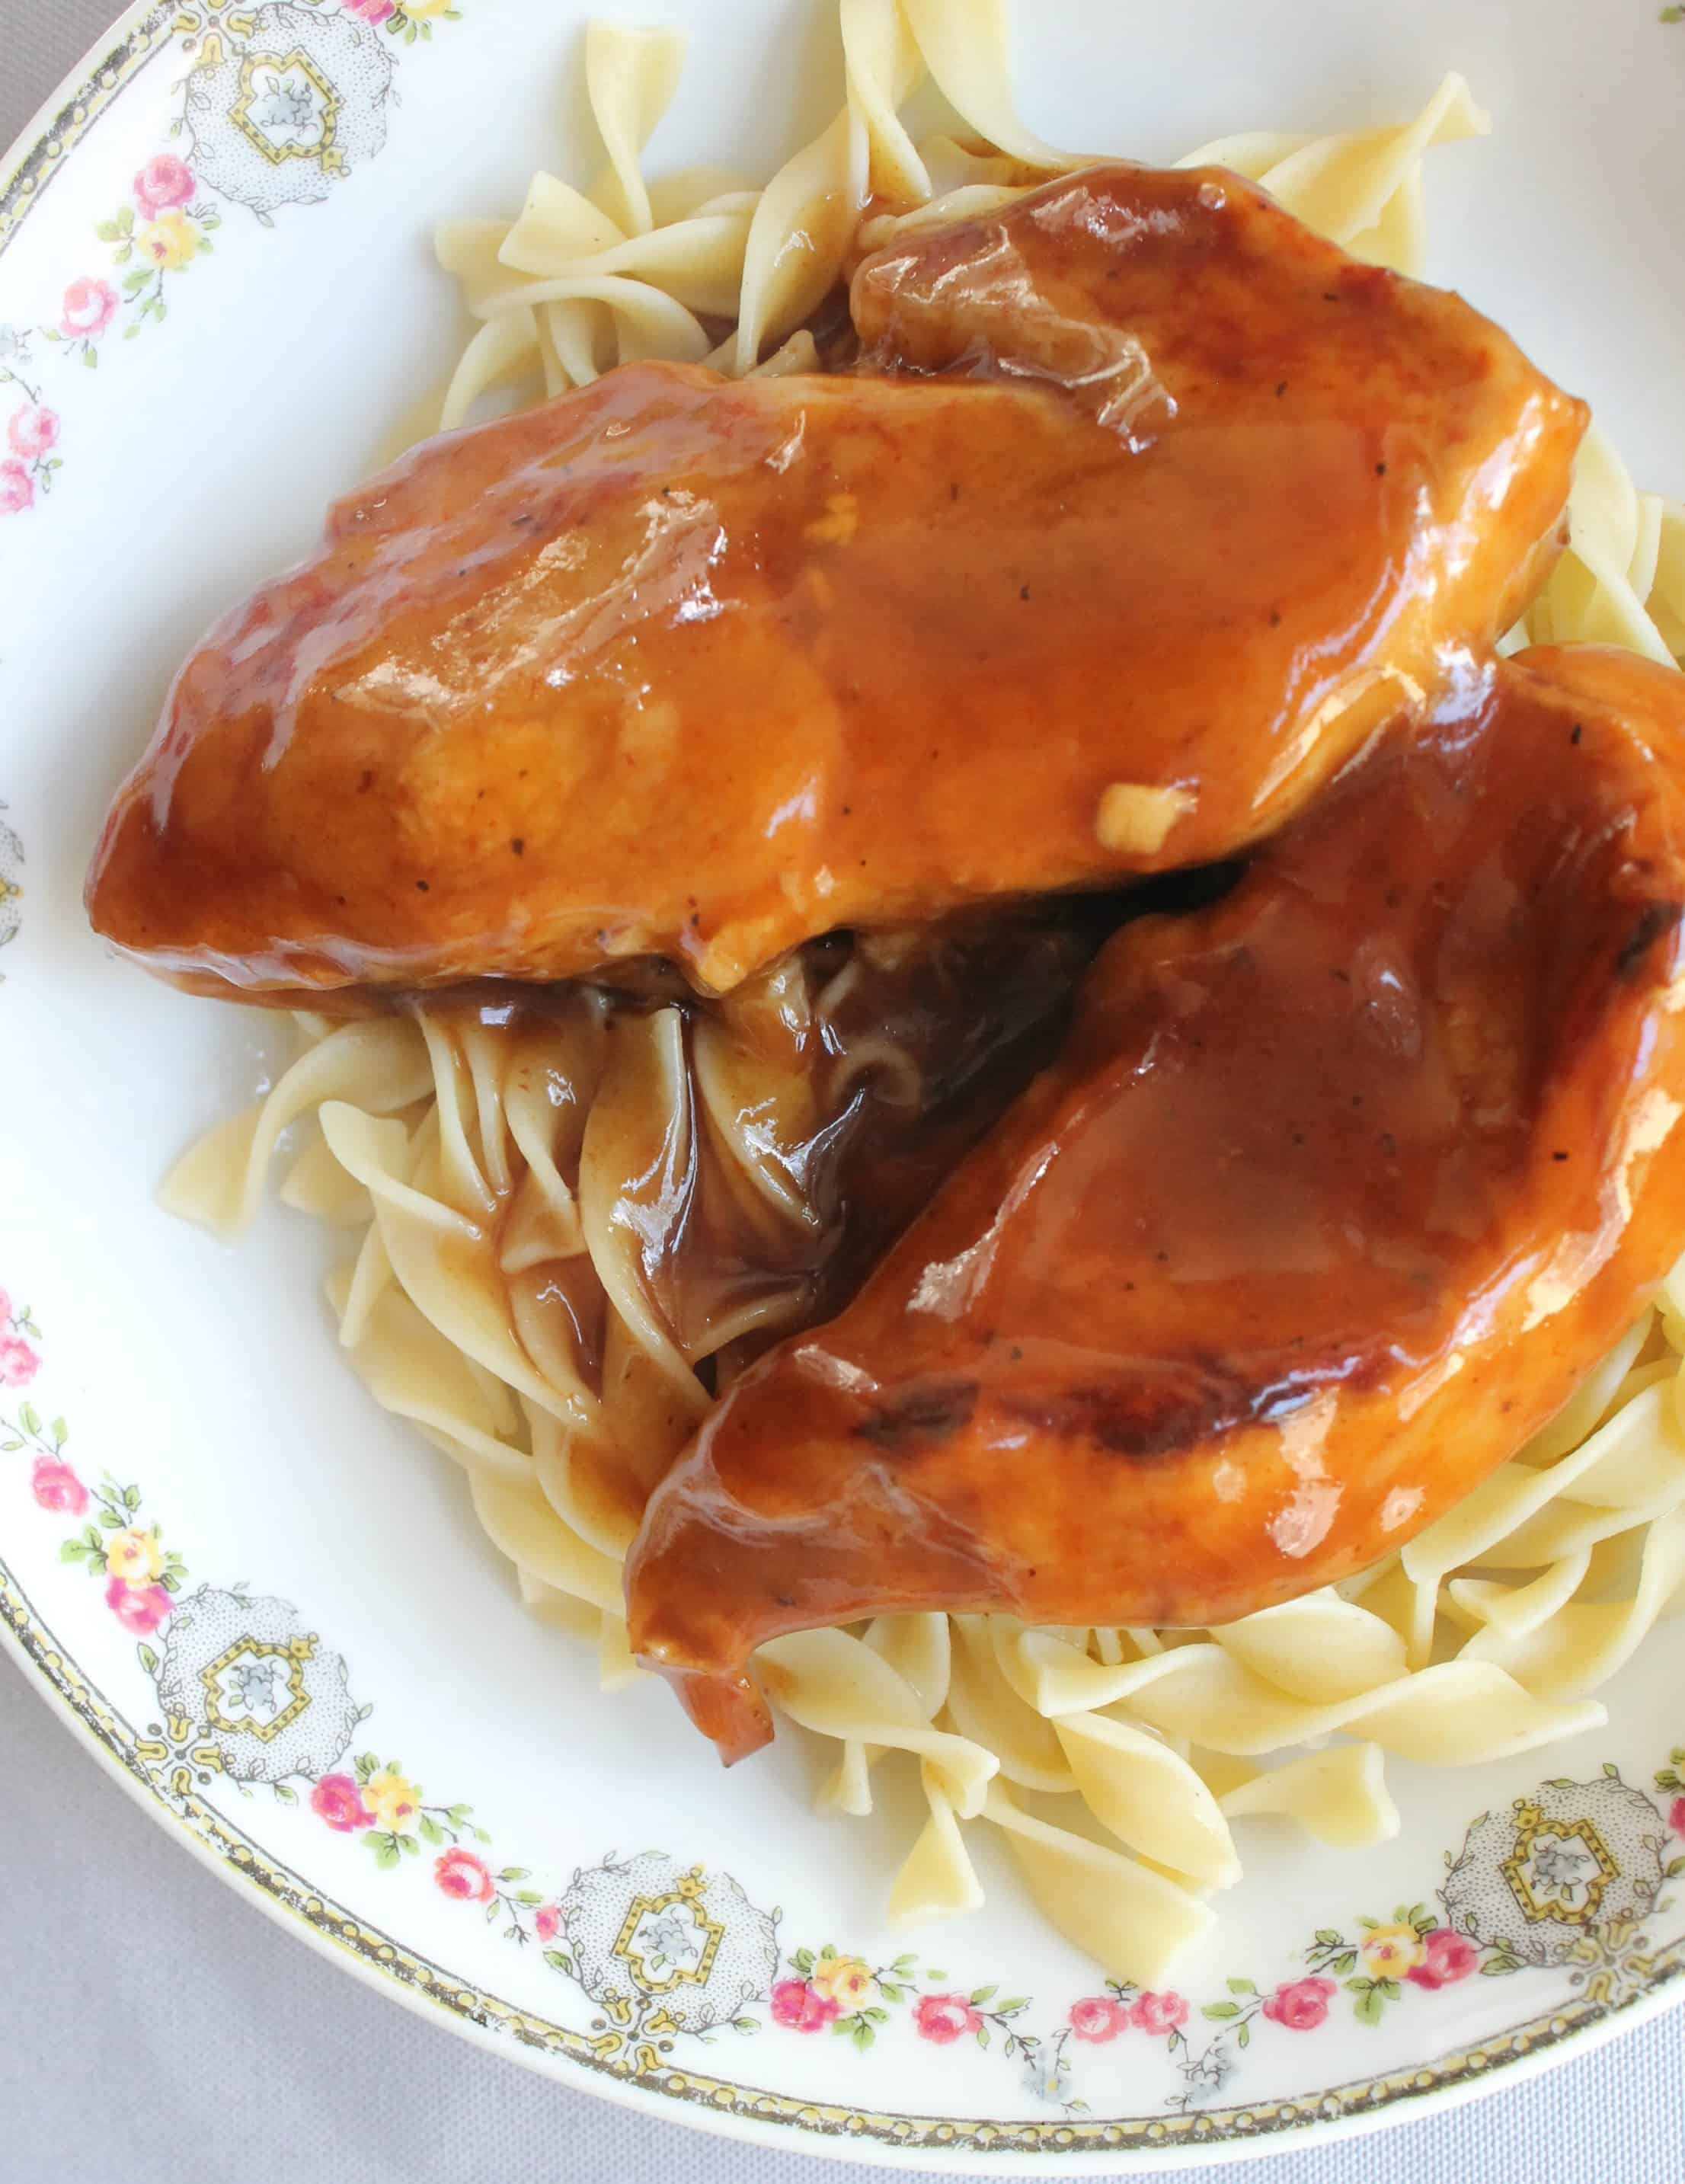 How to Make Pressure Cooker Country Style BBQ Ribs